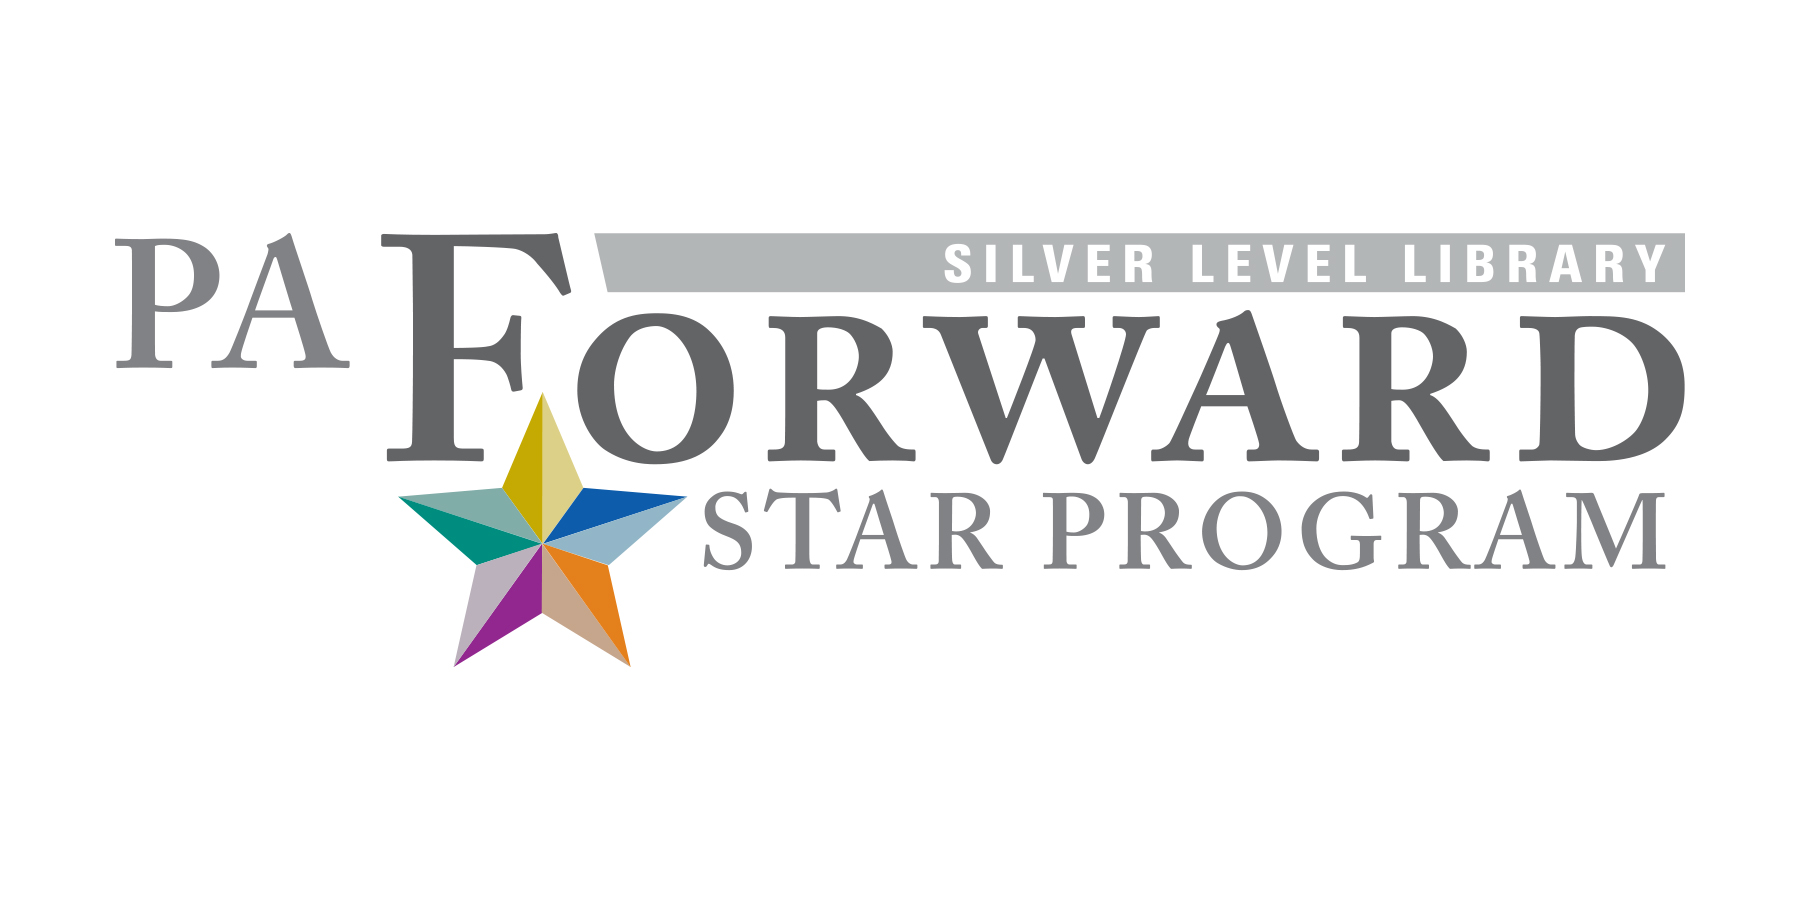 PA Forward Star Program - Silver Level Library